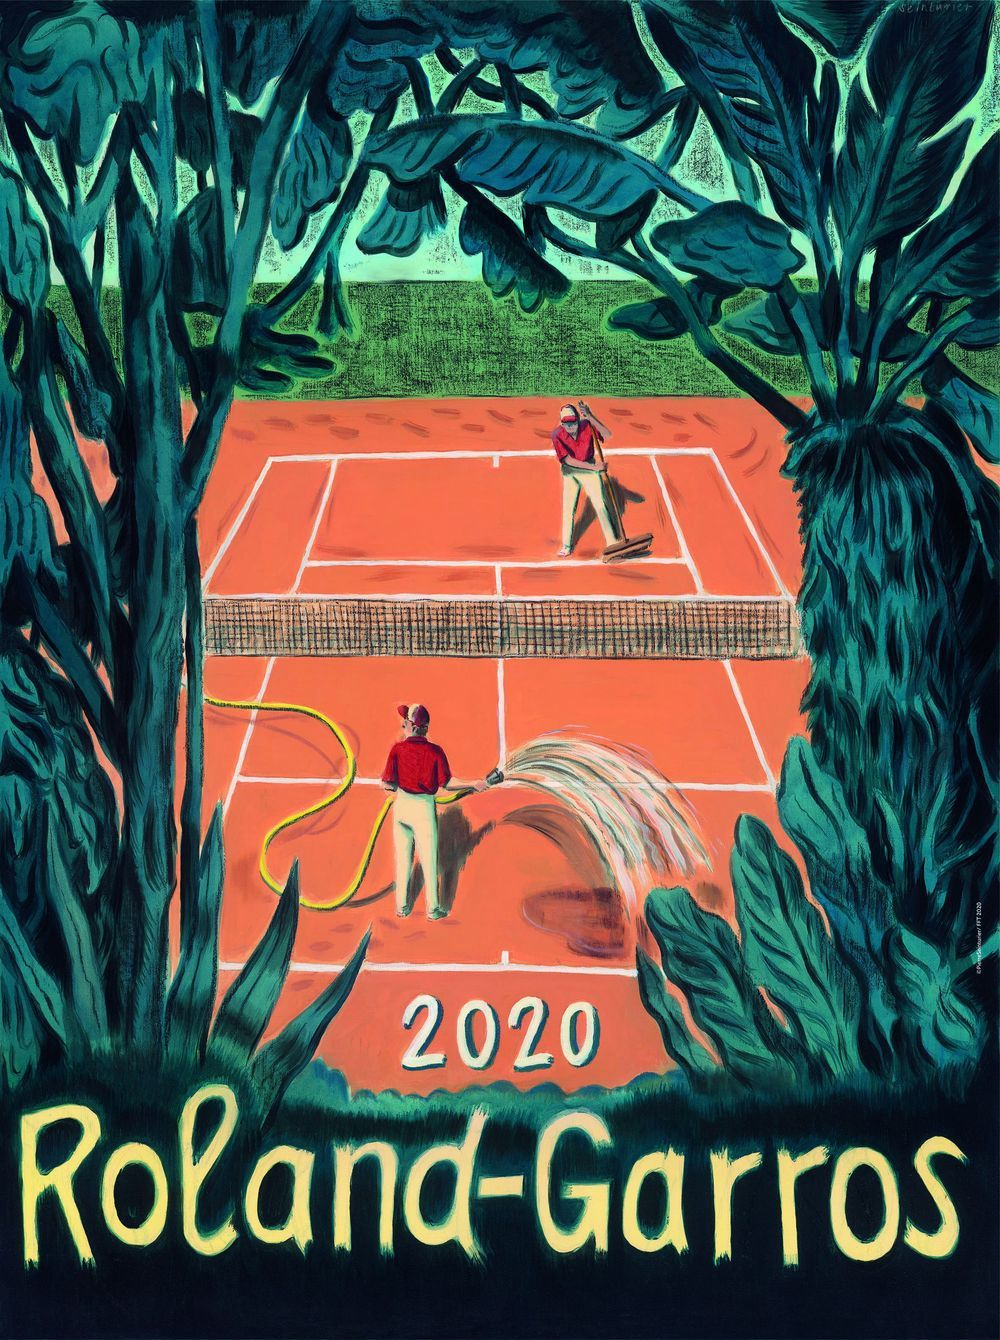 Beautiful 2020 Roland Garros Poster In 2020 Roland Garros Classic Paintings Illustrations Posters